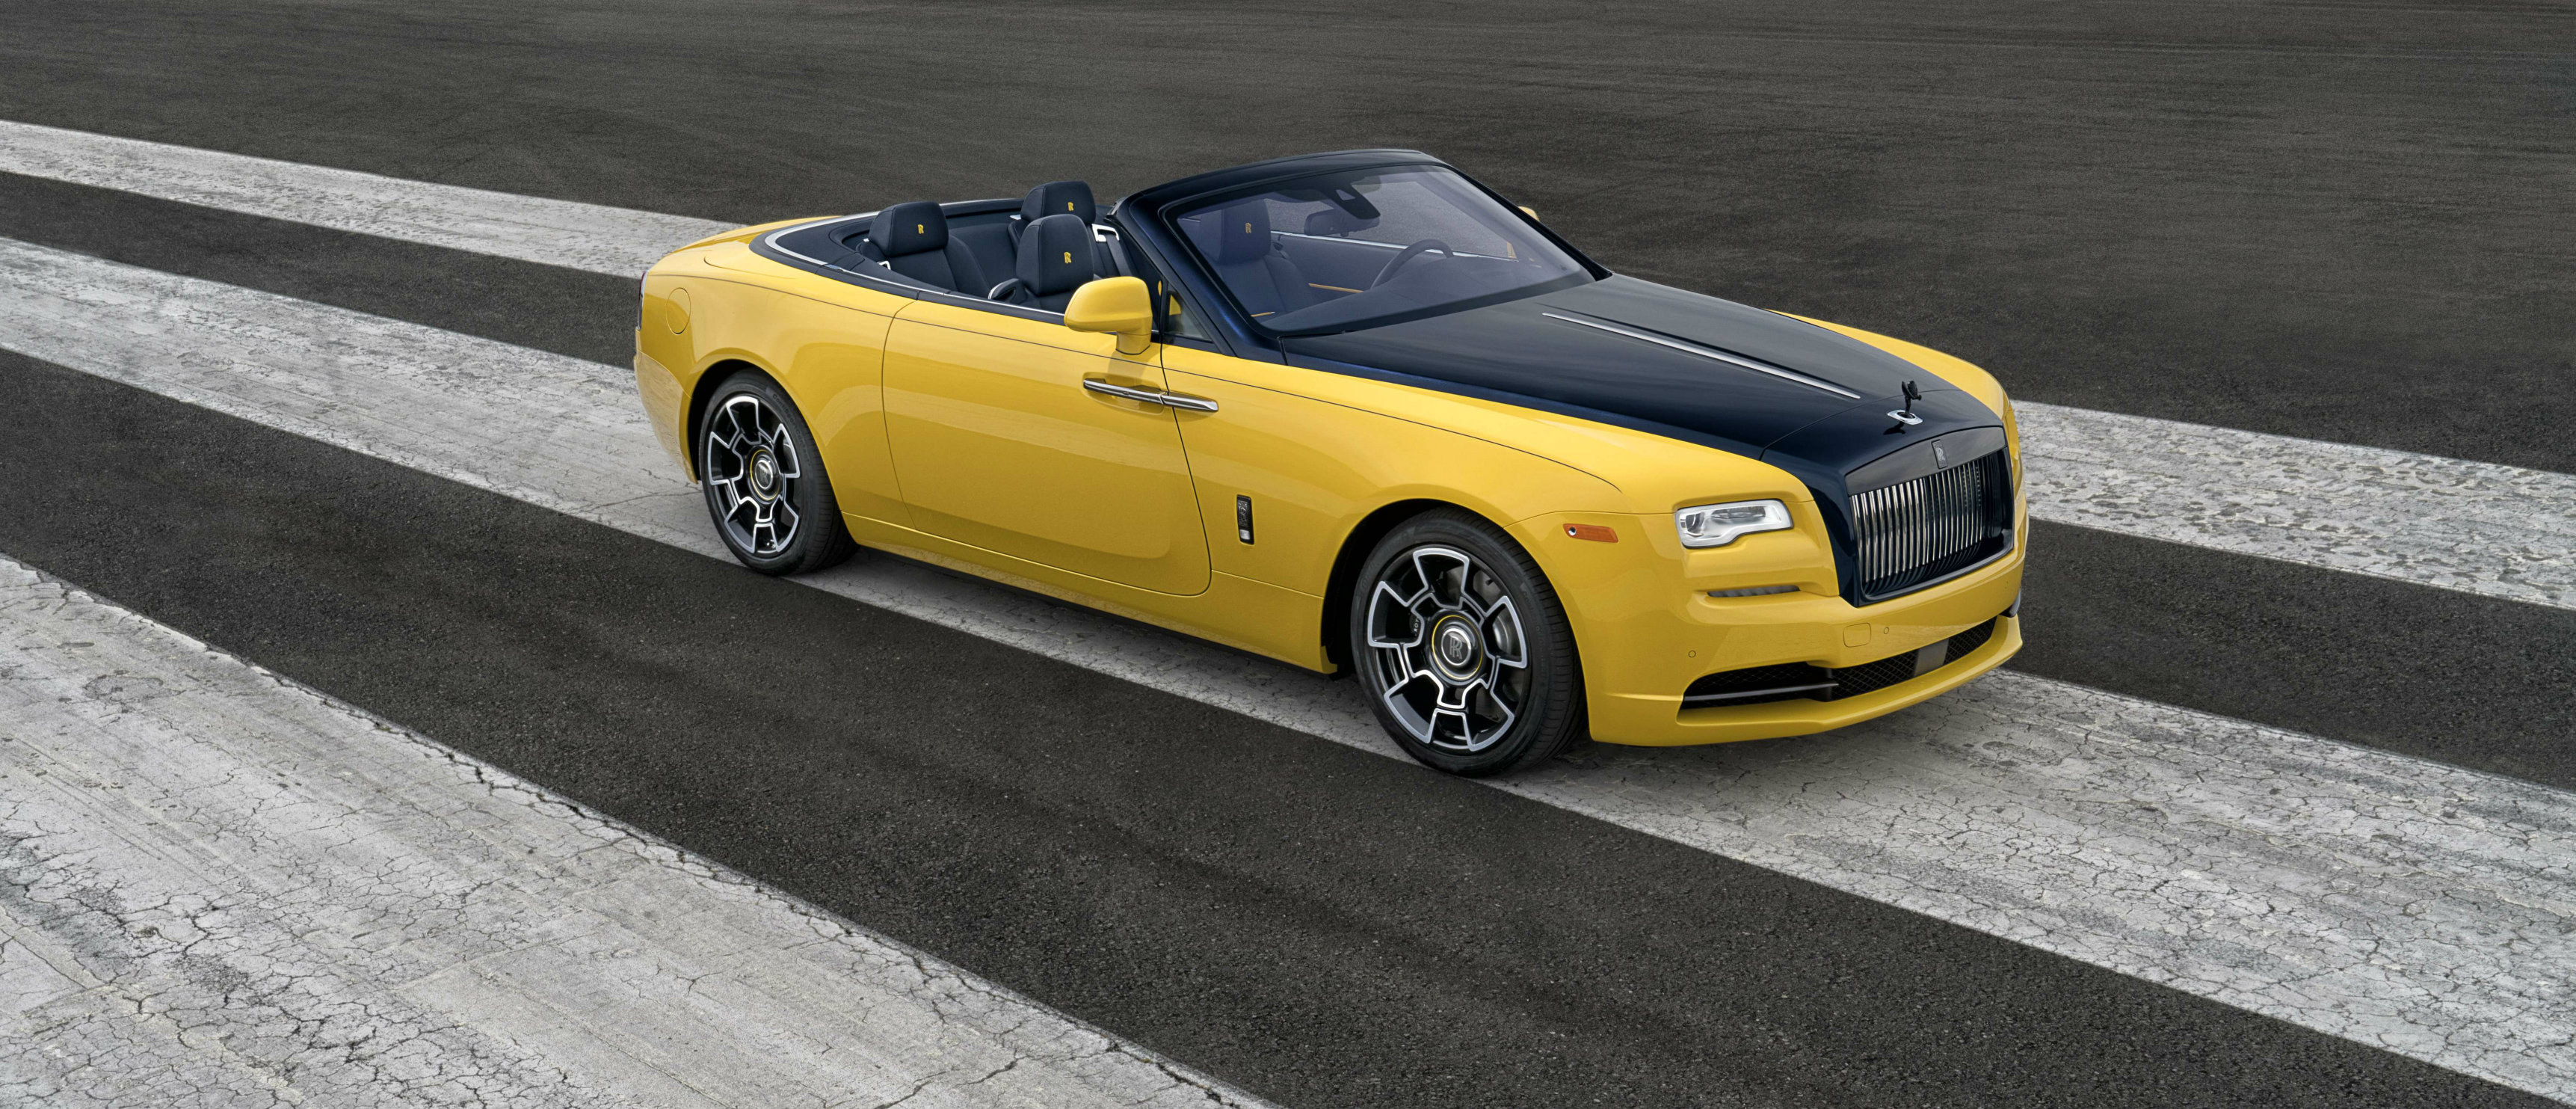 Benjamin Treynor Sloss, Vice President of Engineering at Google and a well-known car enthusiast, has taken delivery of a very personal Rolls-Royce Dawn Black Badge at this year's Pebble Beach Concours d'Elegance.